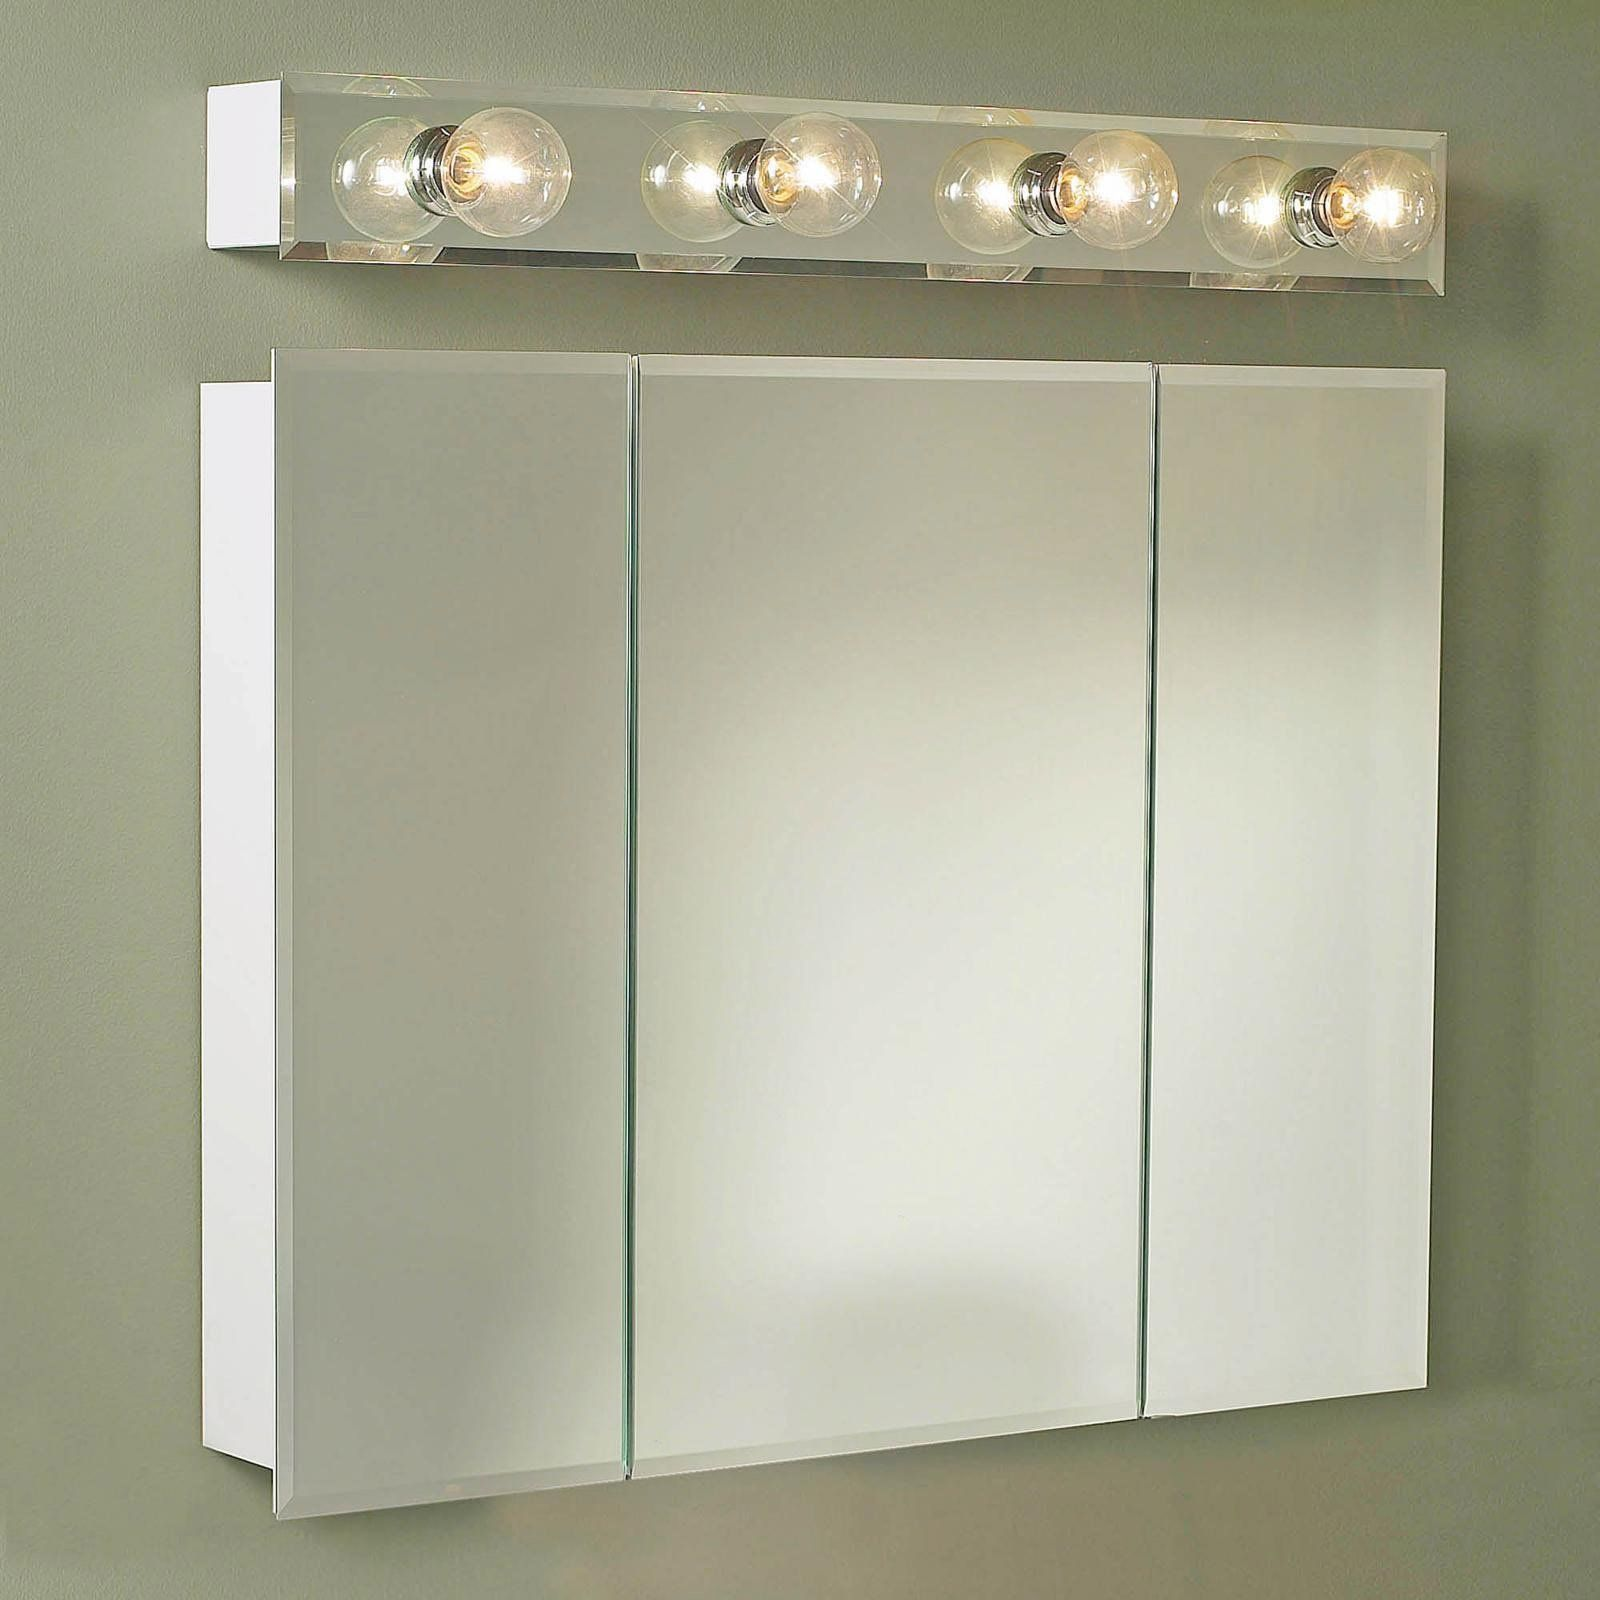 lights look bathroom medicine mirror cabinets with recessed cabinet can you